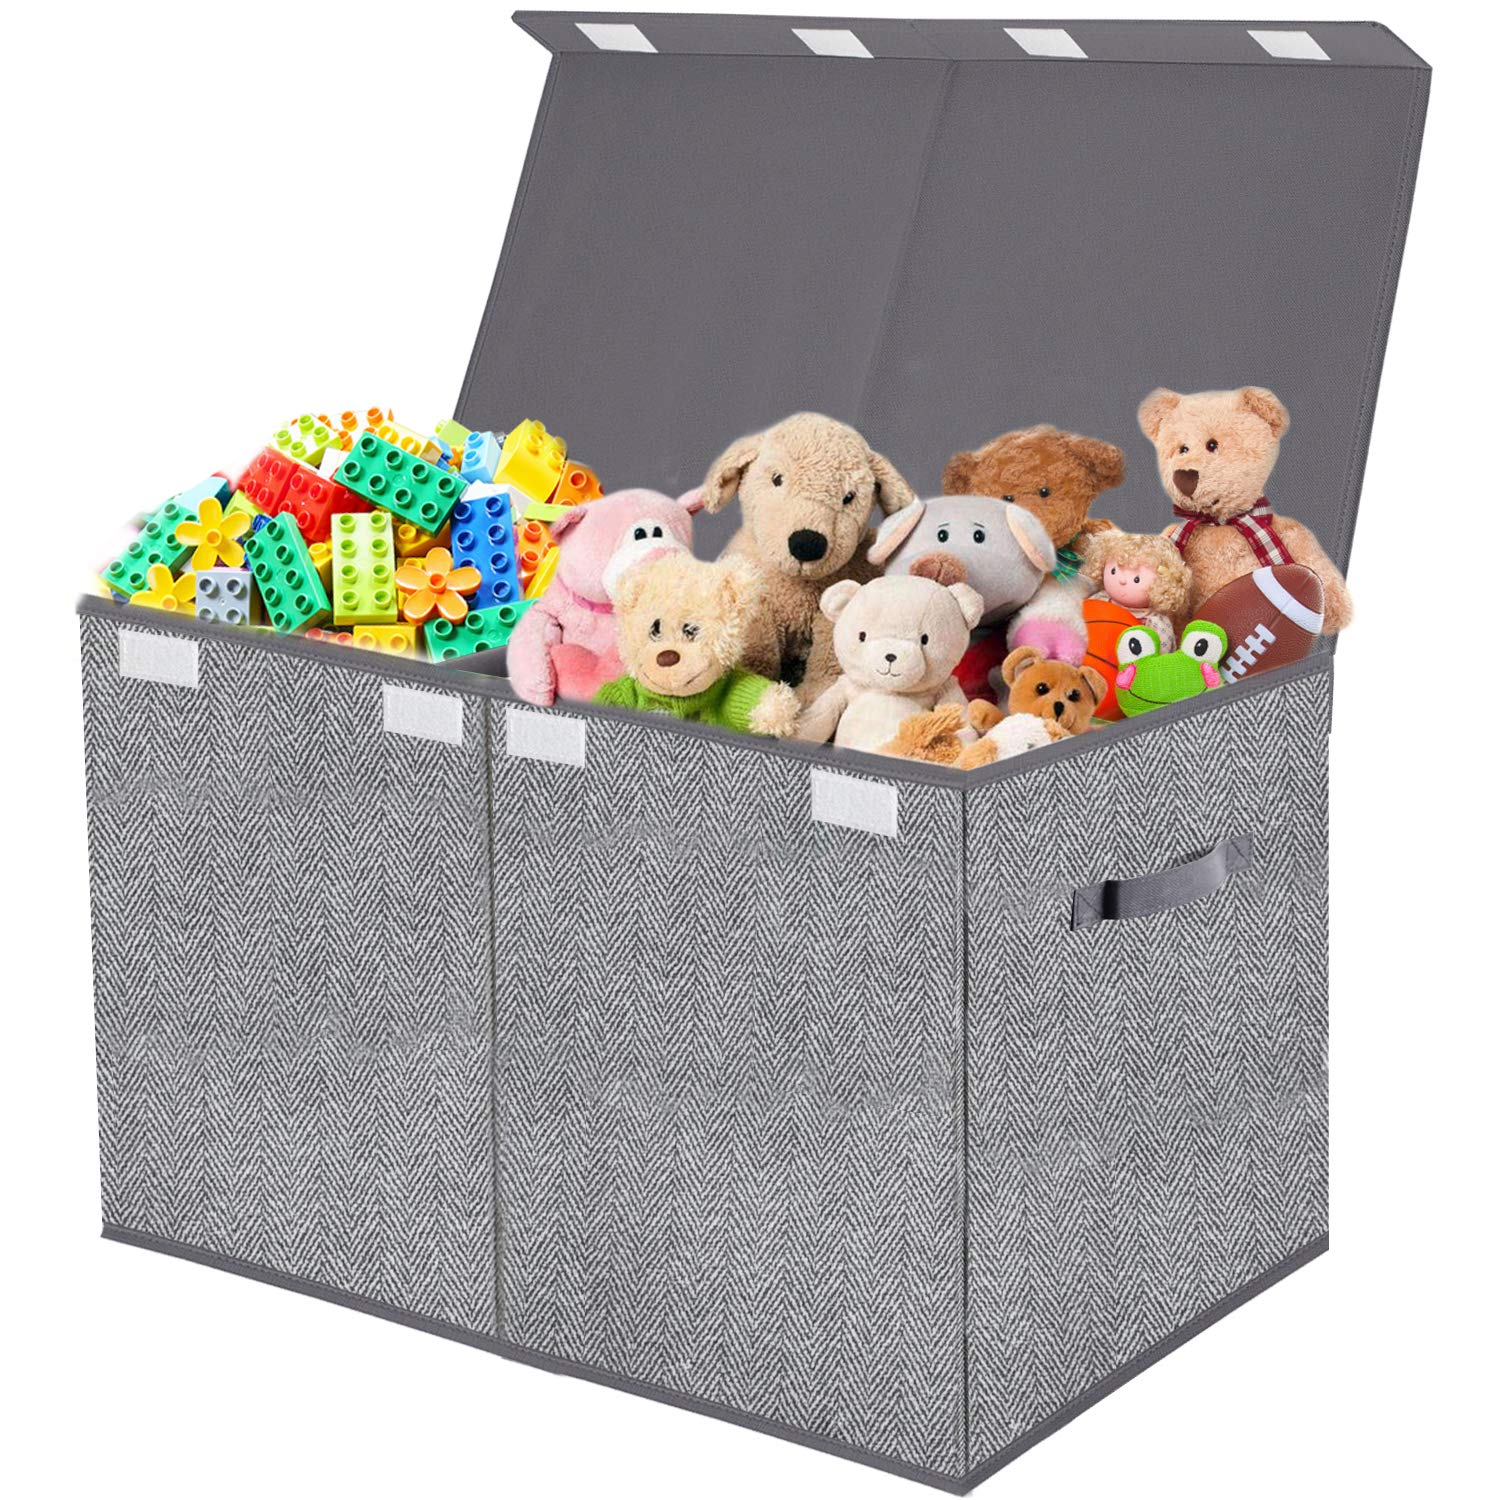 Toy Chest Organizer with Flip-Top Lid,Collapsible Kids Storage for Nursery,Playroom,Closet Home Organization,Herringbone Pattern(Grey)